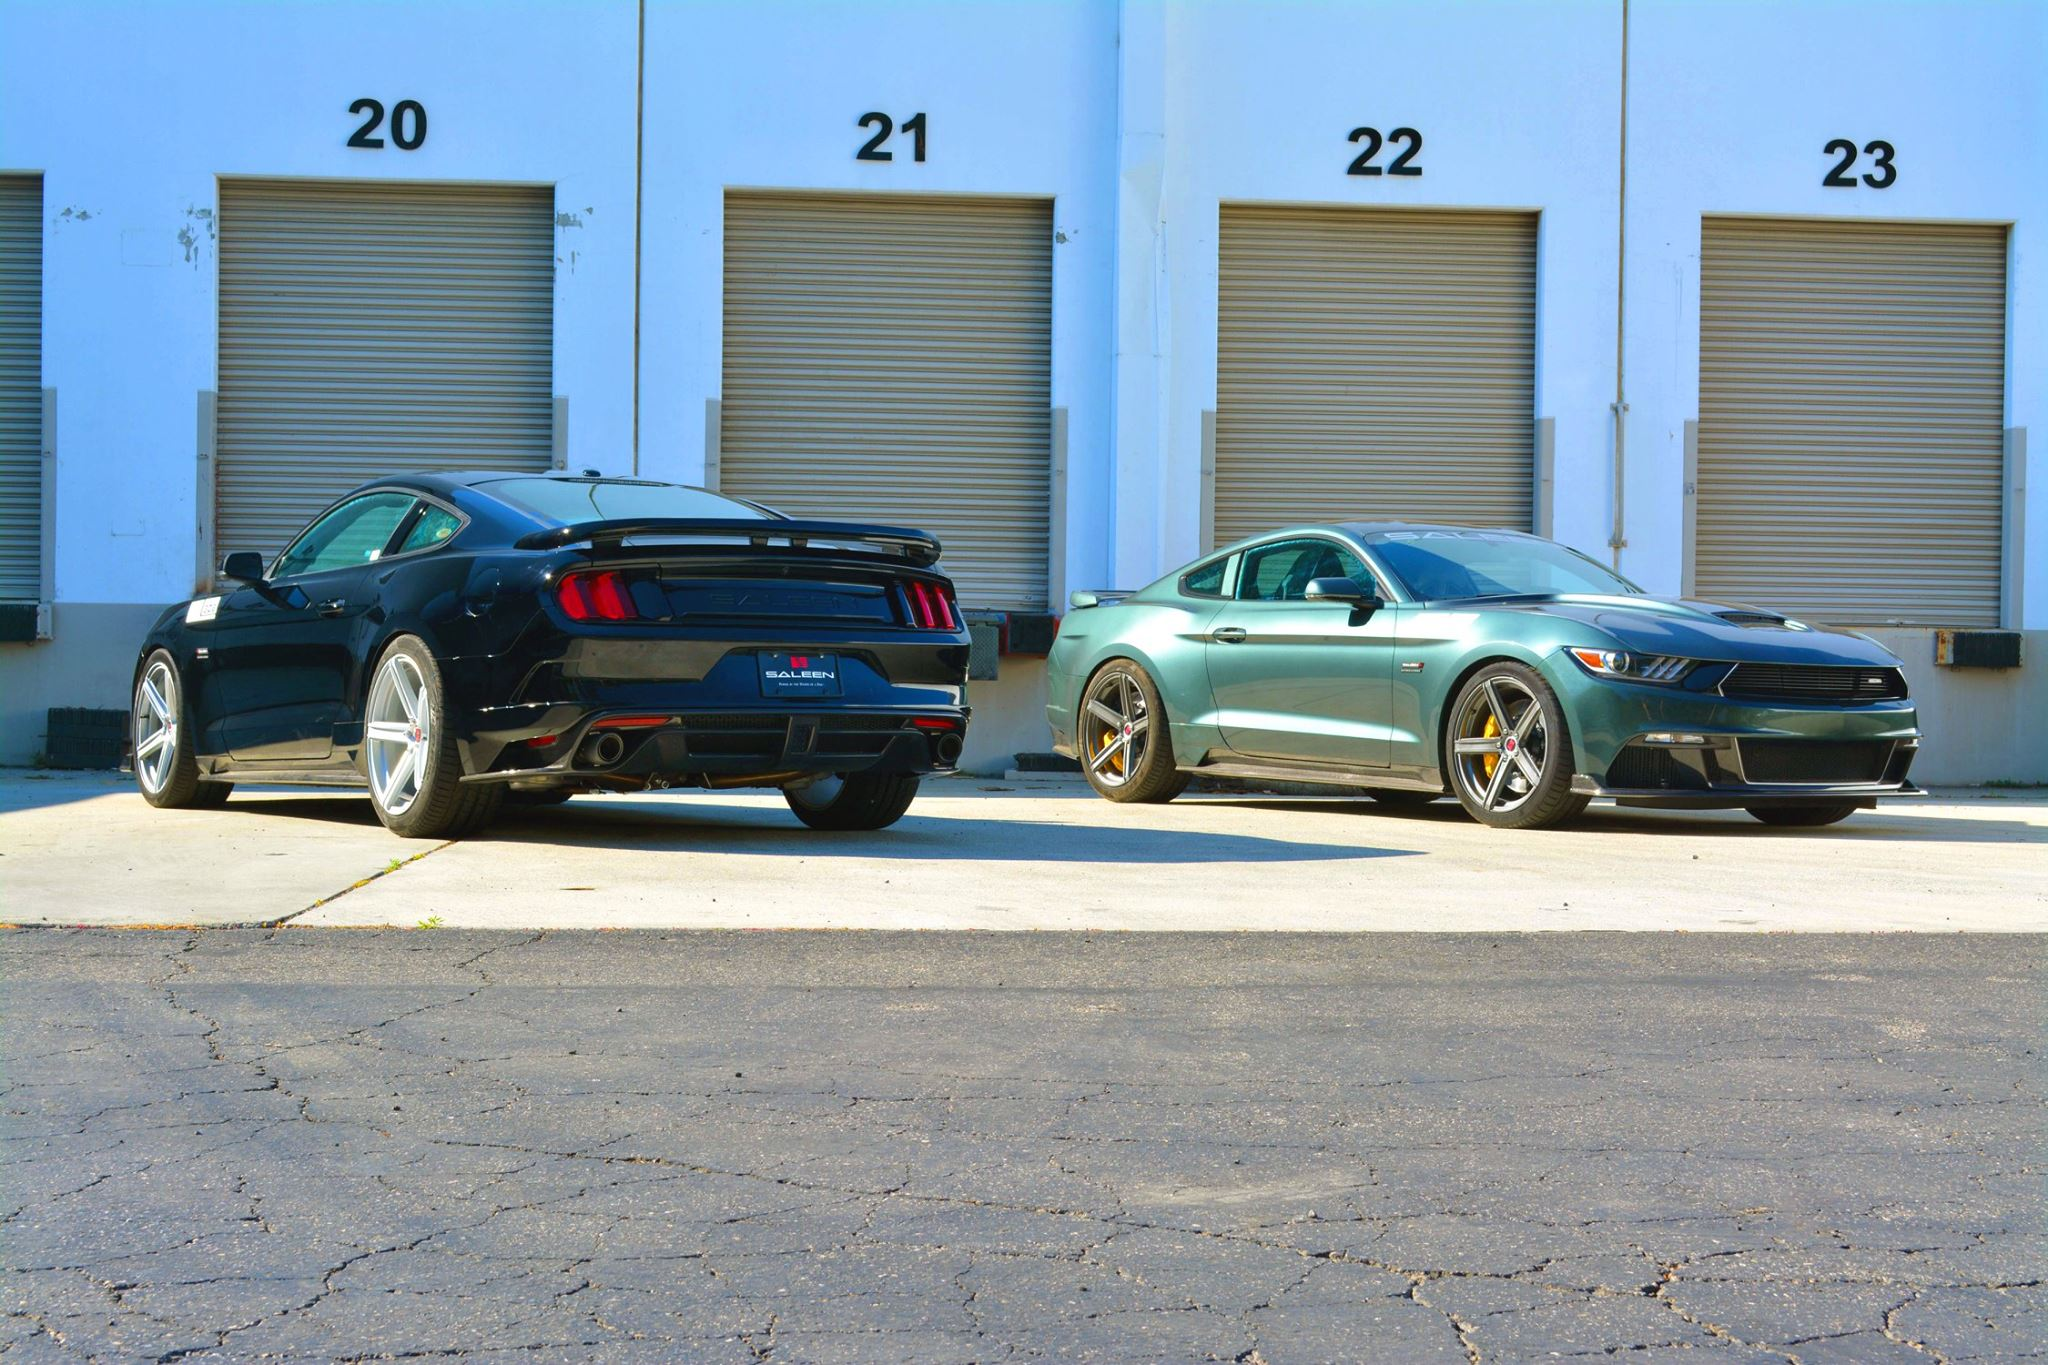 2015 302 Black Label coupes: Shown in hues Black and Guard